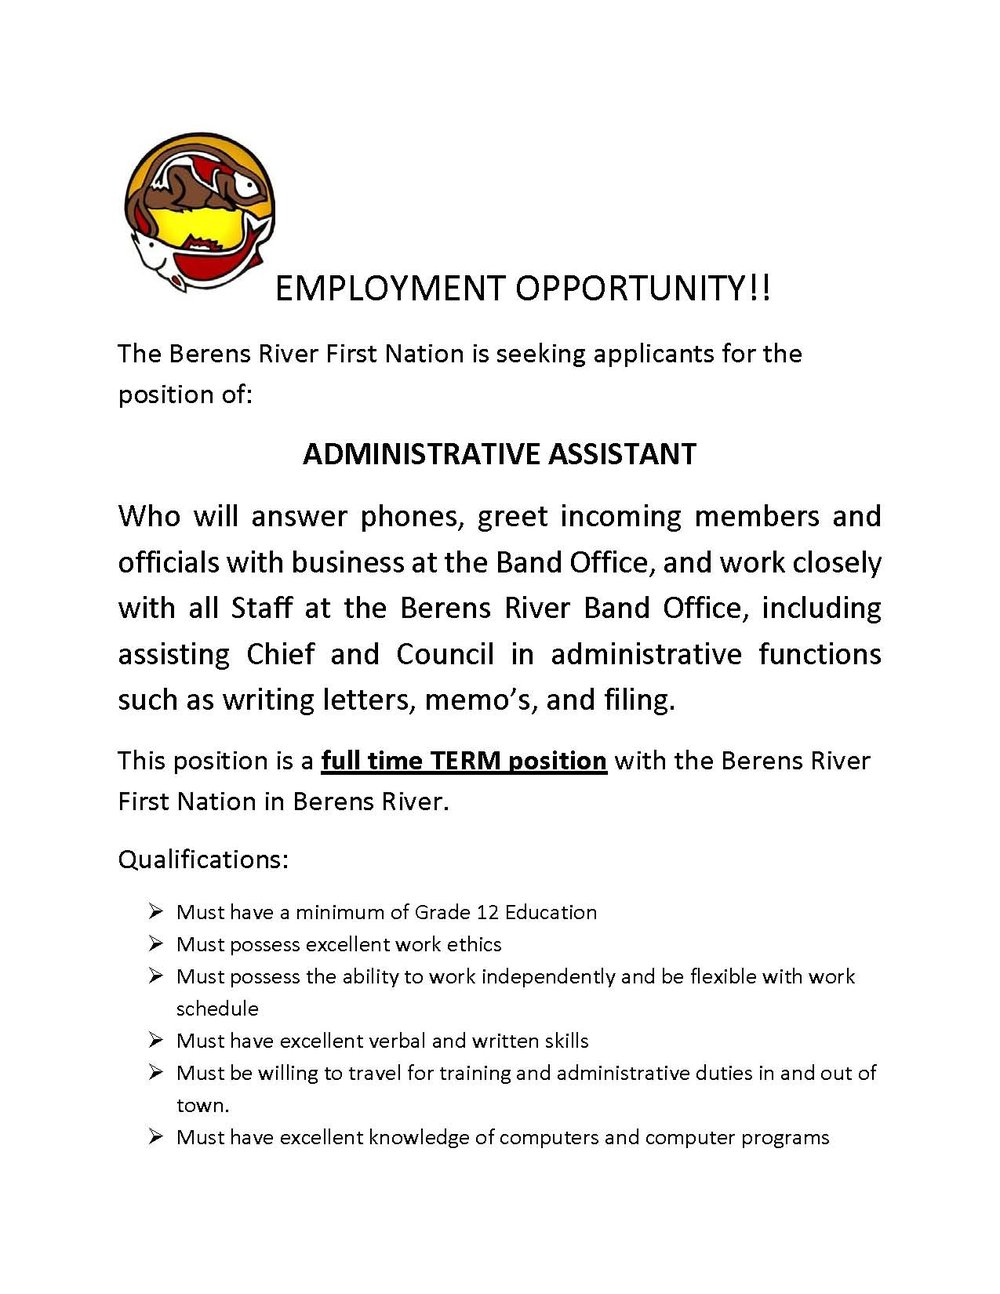 EMPLOYMENT OPPORTUNITY - Admin Assistant_Page_1.jpg